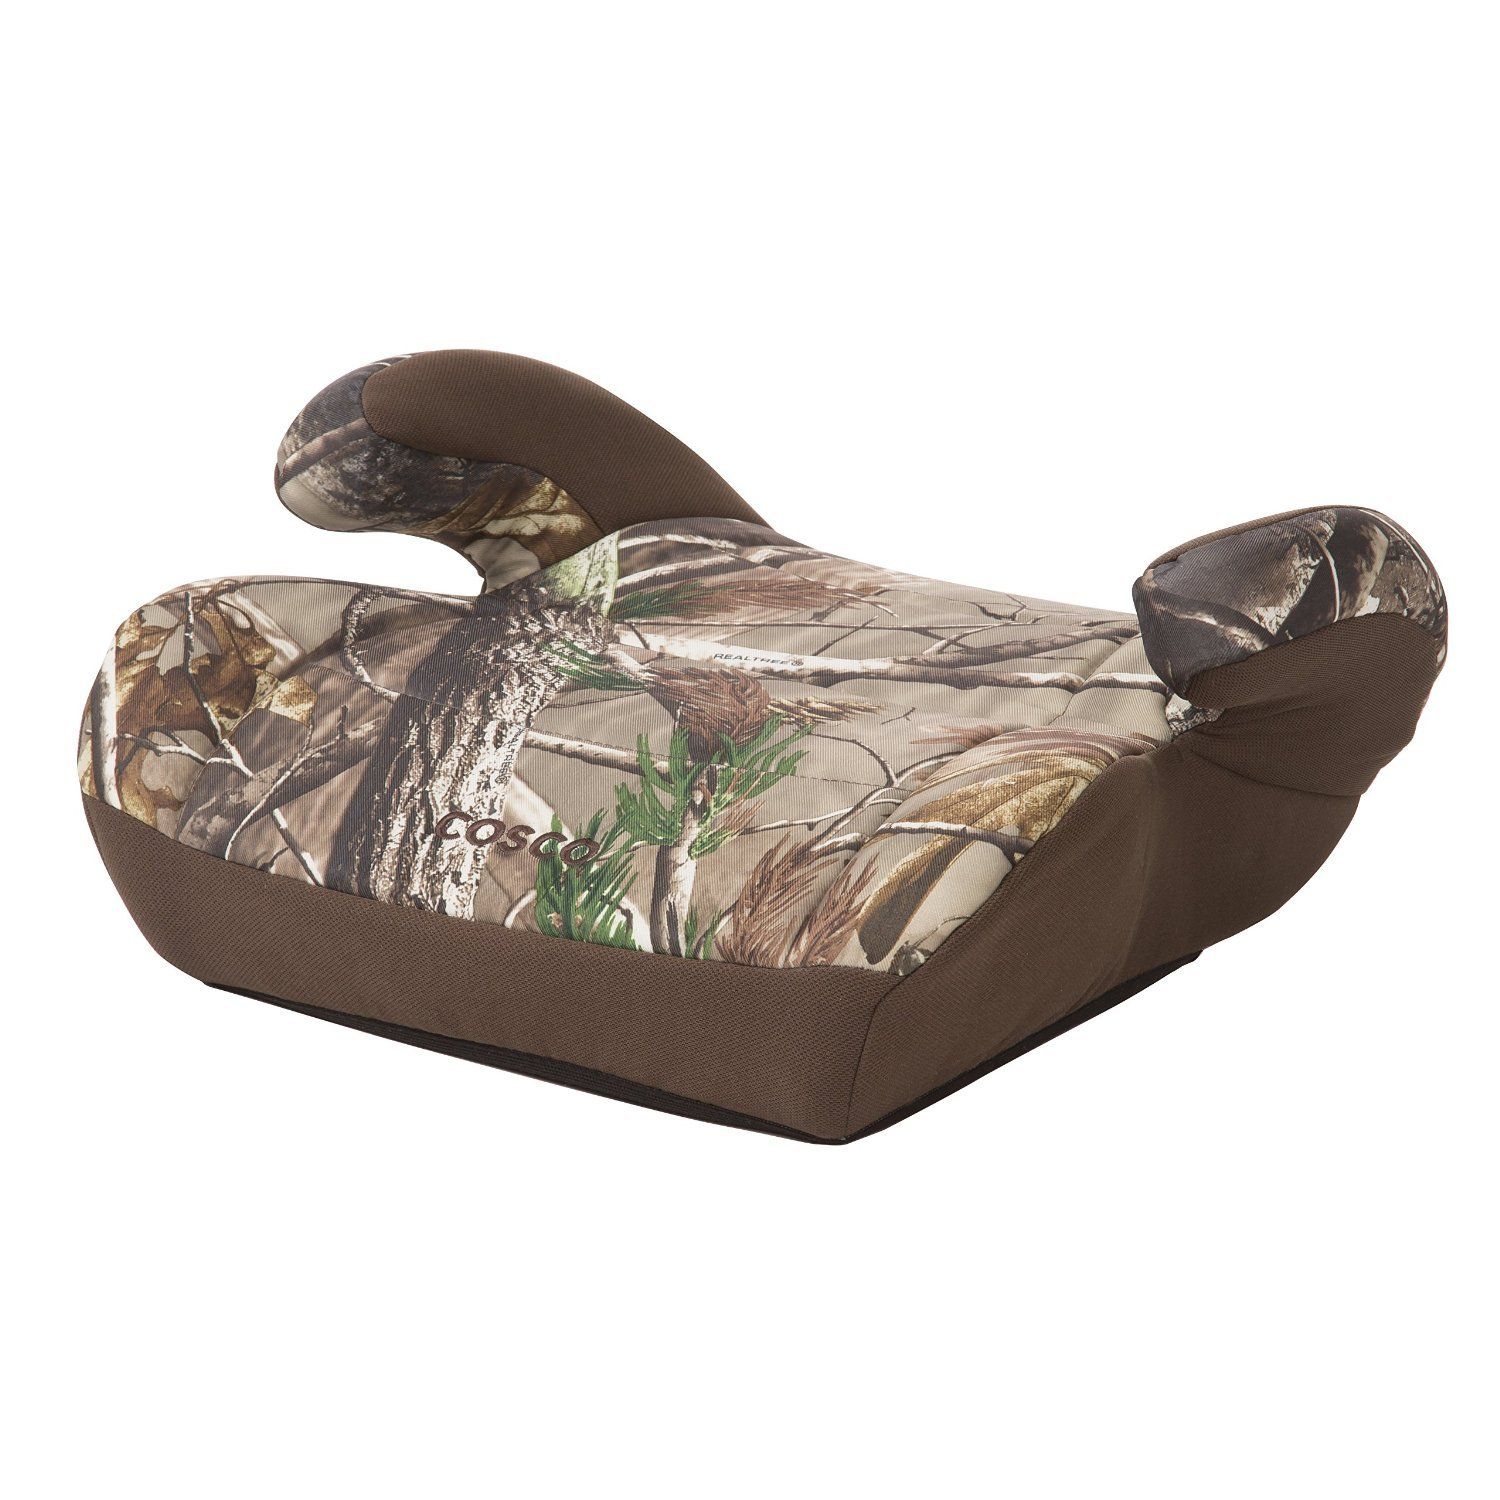 Cosco Top Side Booster Car Seat Camo Realtree